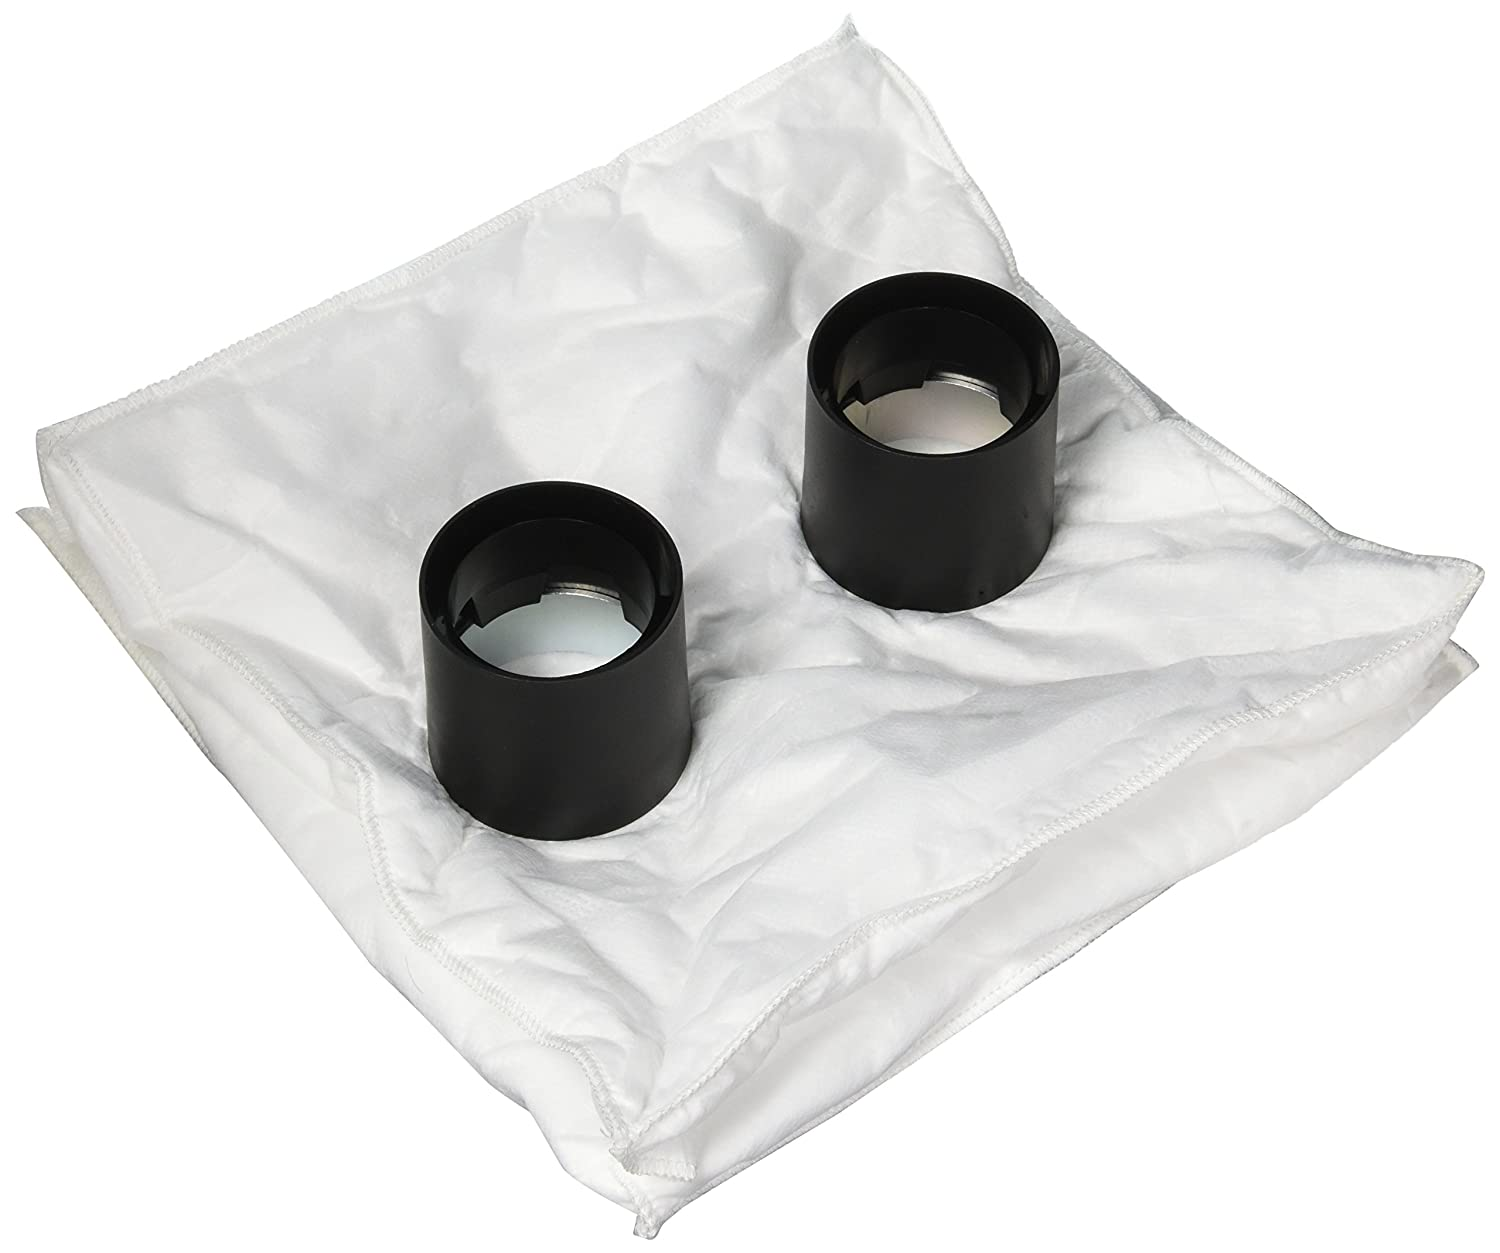 Weller 145-4000 Pre Filter Bag Mg140 (2 Pcs), Black Apex Tool Group